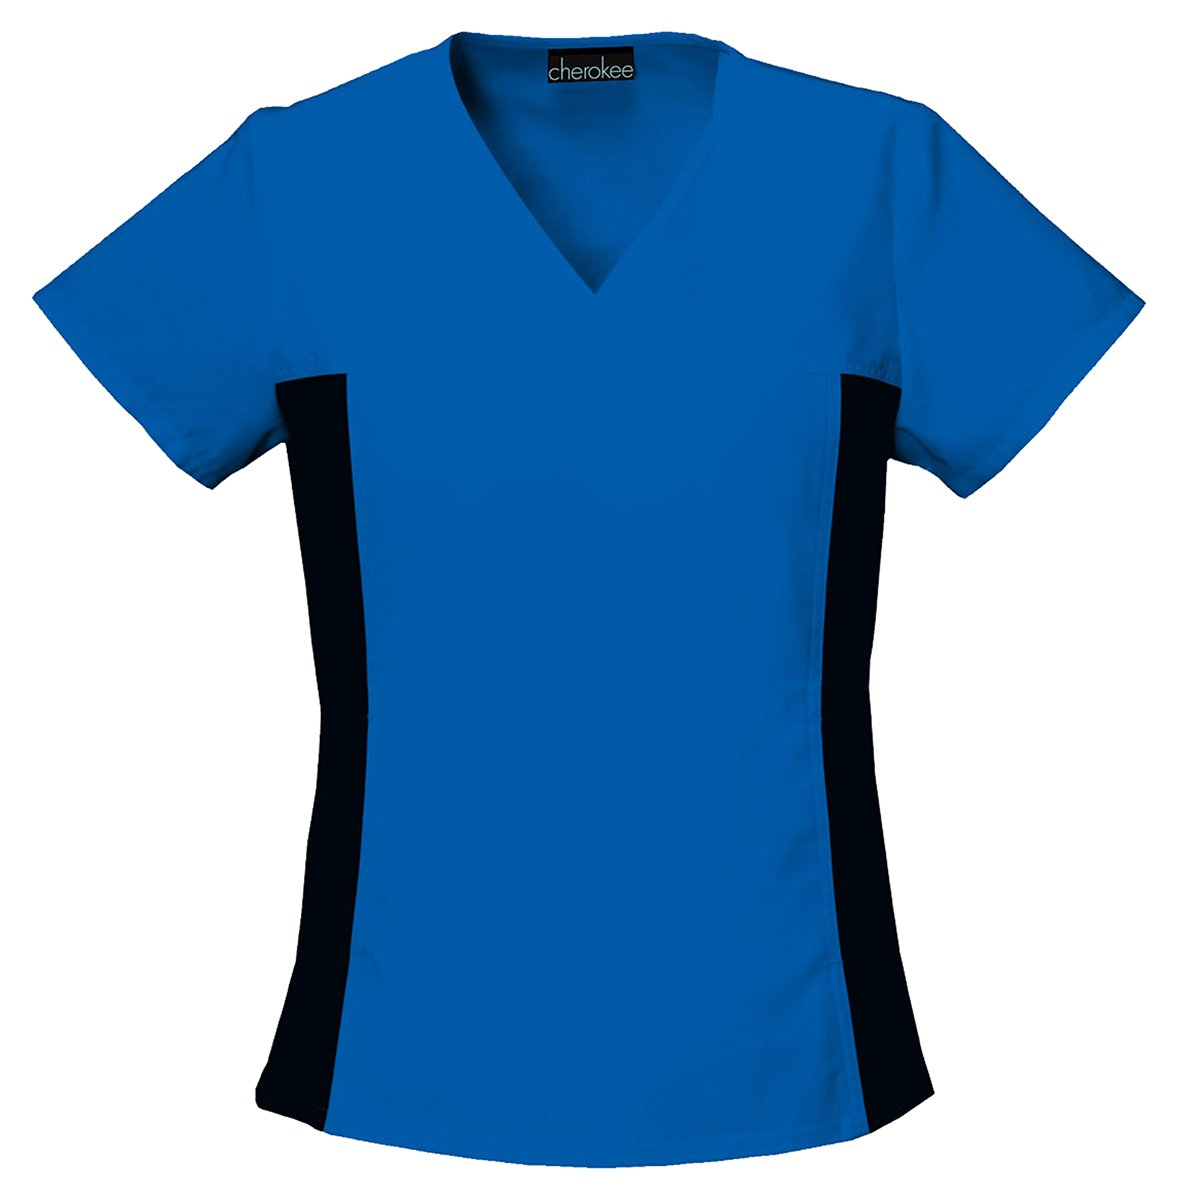 Cherokee Women's Contemporary V-Neck Knit Panel Top_Royal_X-Large,2874